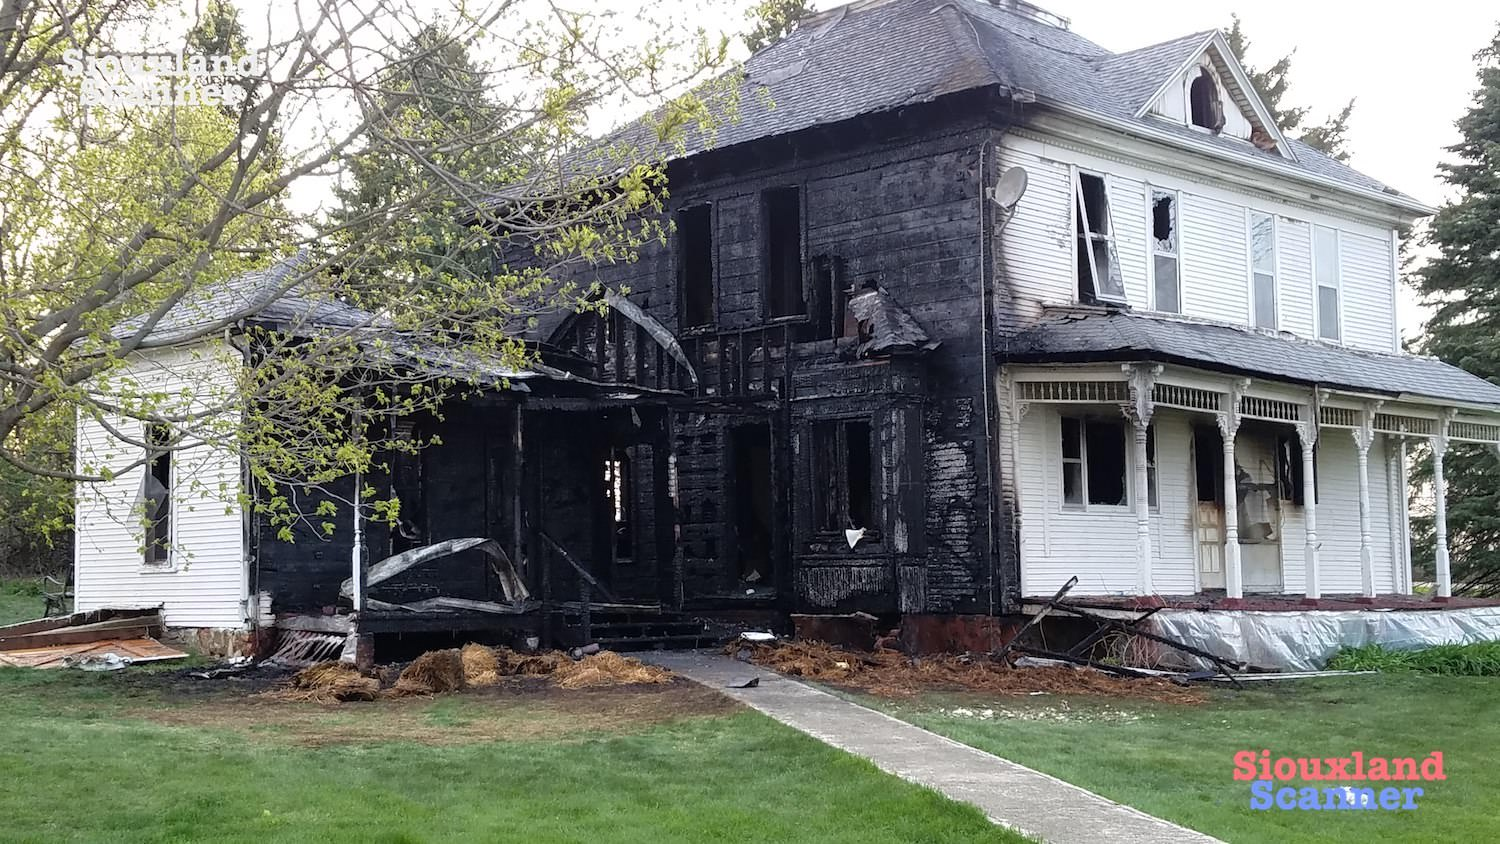 Rural Plymouth County Farmhouse a total loss after Sunday Evening Fire